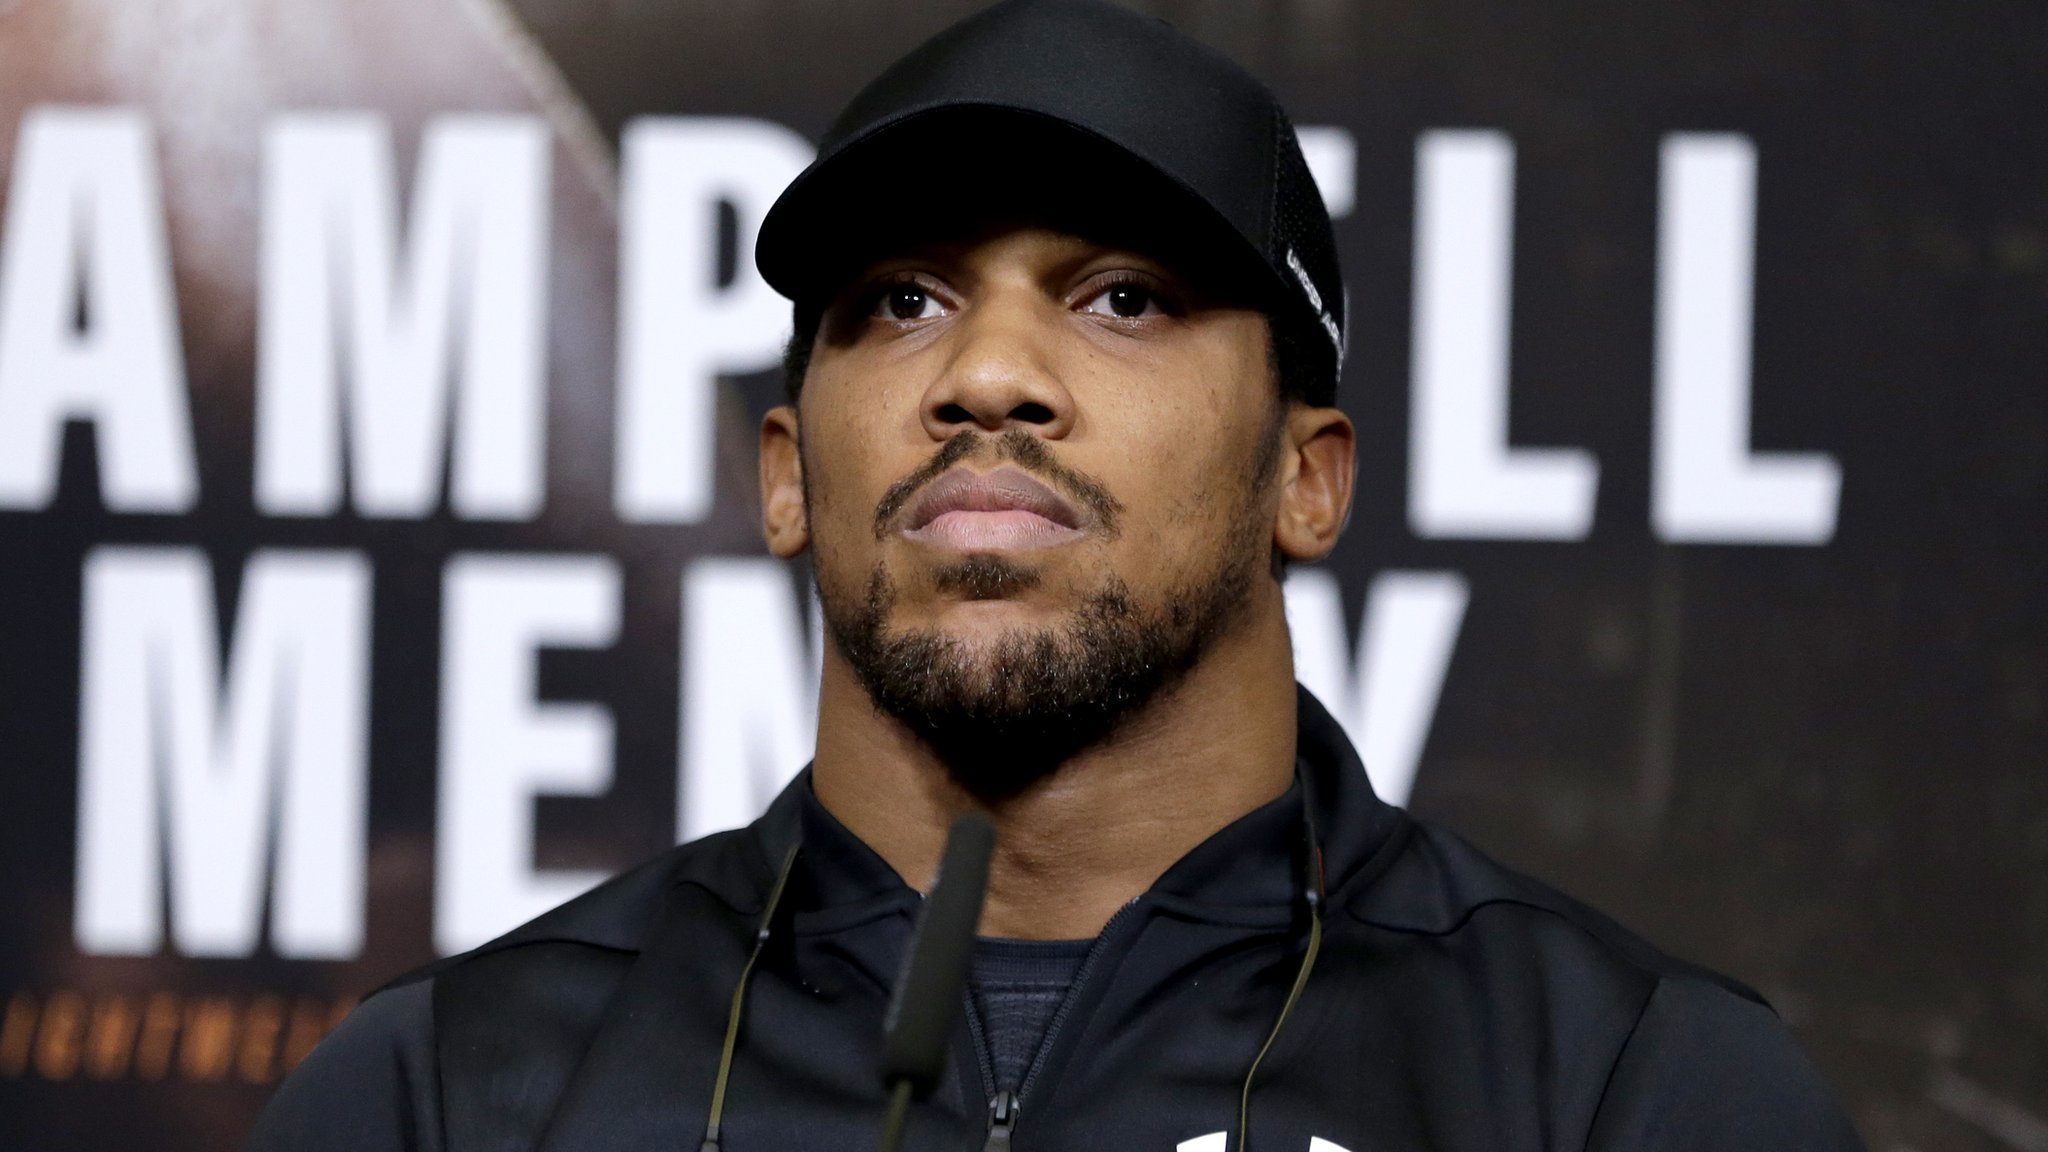 Anthony Joshua v Alexander Povetkin: Heavyweight champion says he feels 'tonnes of pressure'